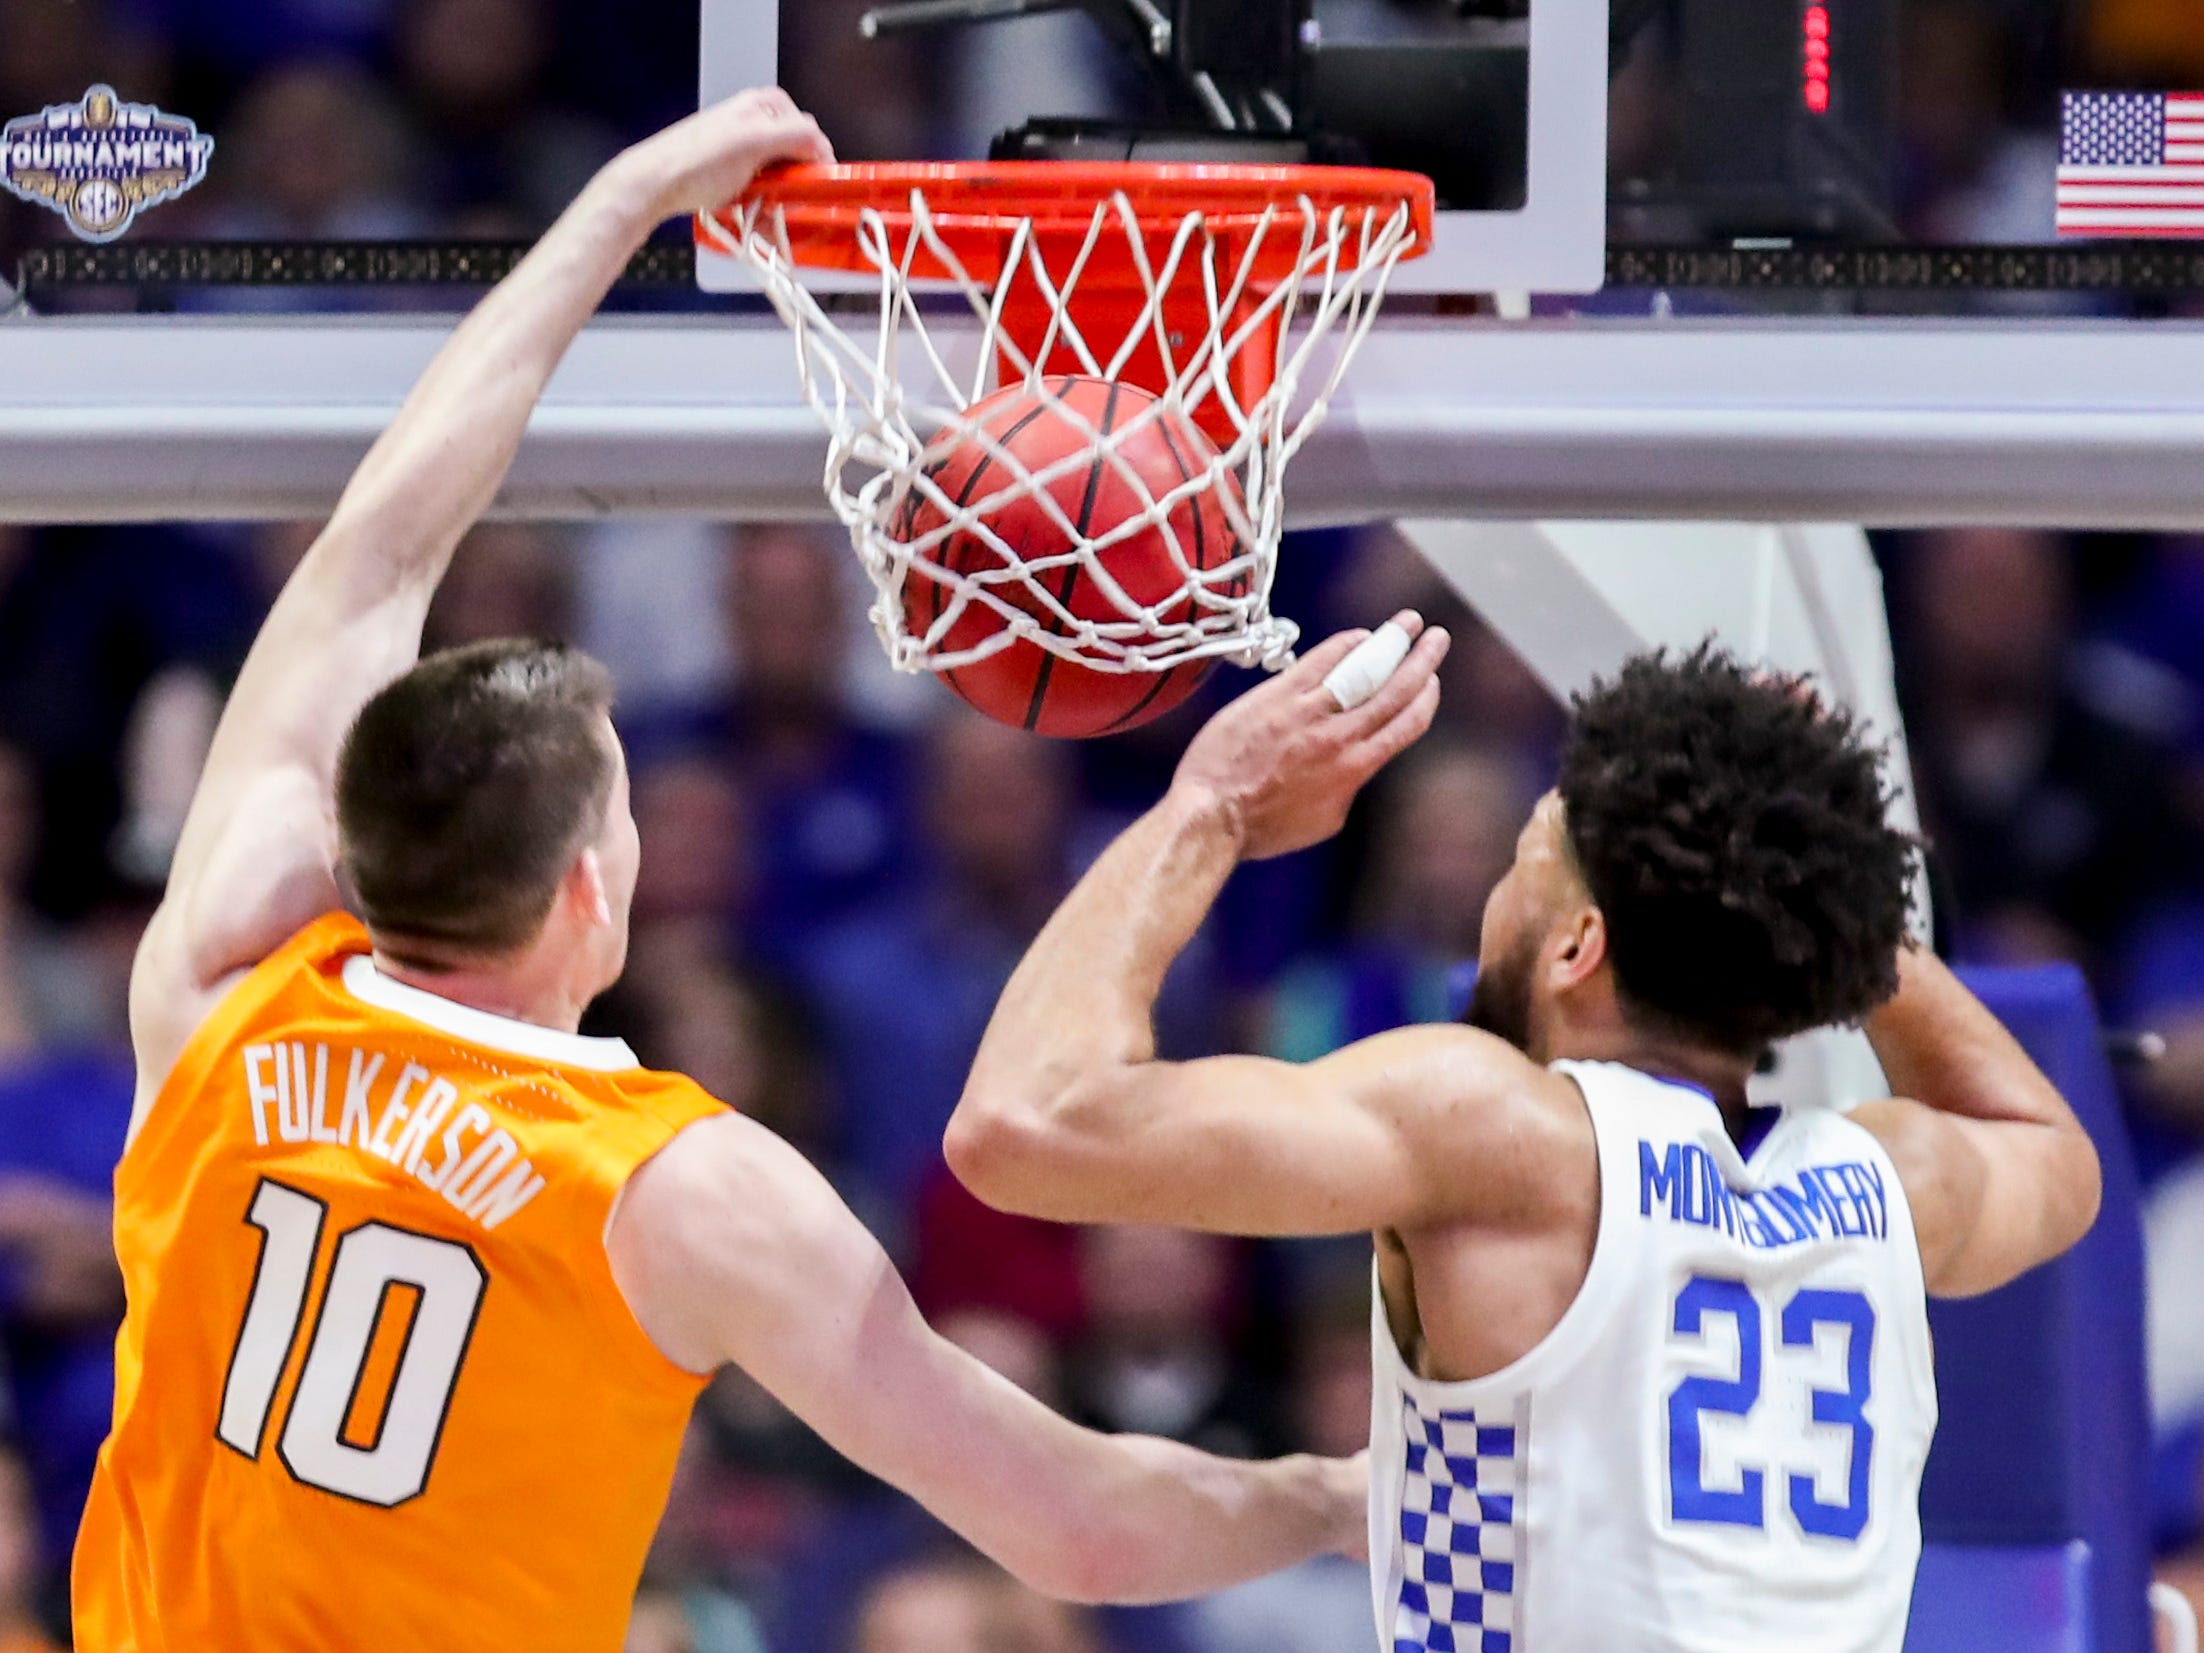 Tennessee forward John Fulkerson (10) dunks past Kentucky forward EJ Montgomery (23) during the first half of the SEC Men's Basketball Tournament semifinal game at Bridgestone Arena in Nashville, Tenn., Saturday, March 16, 2019.